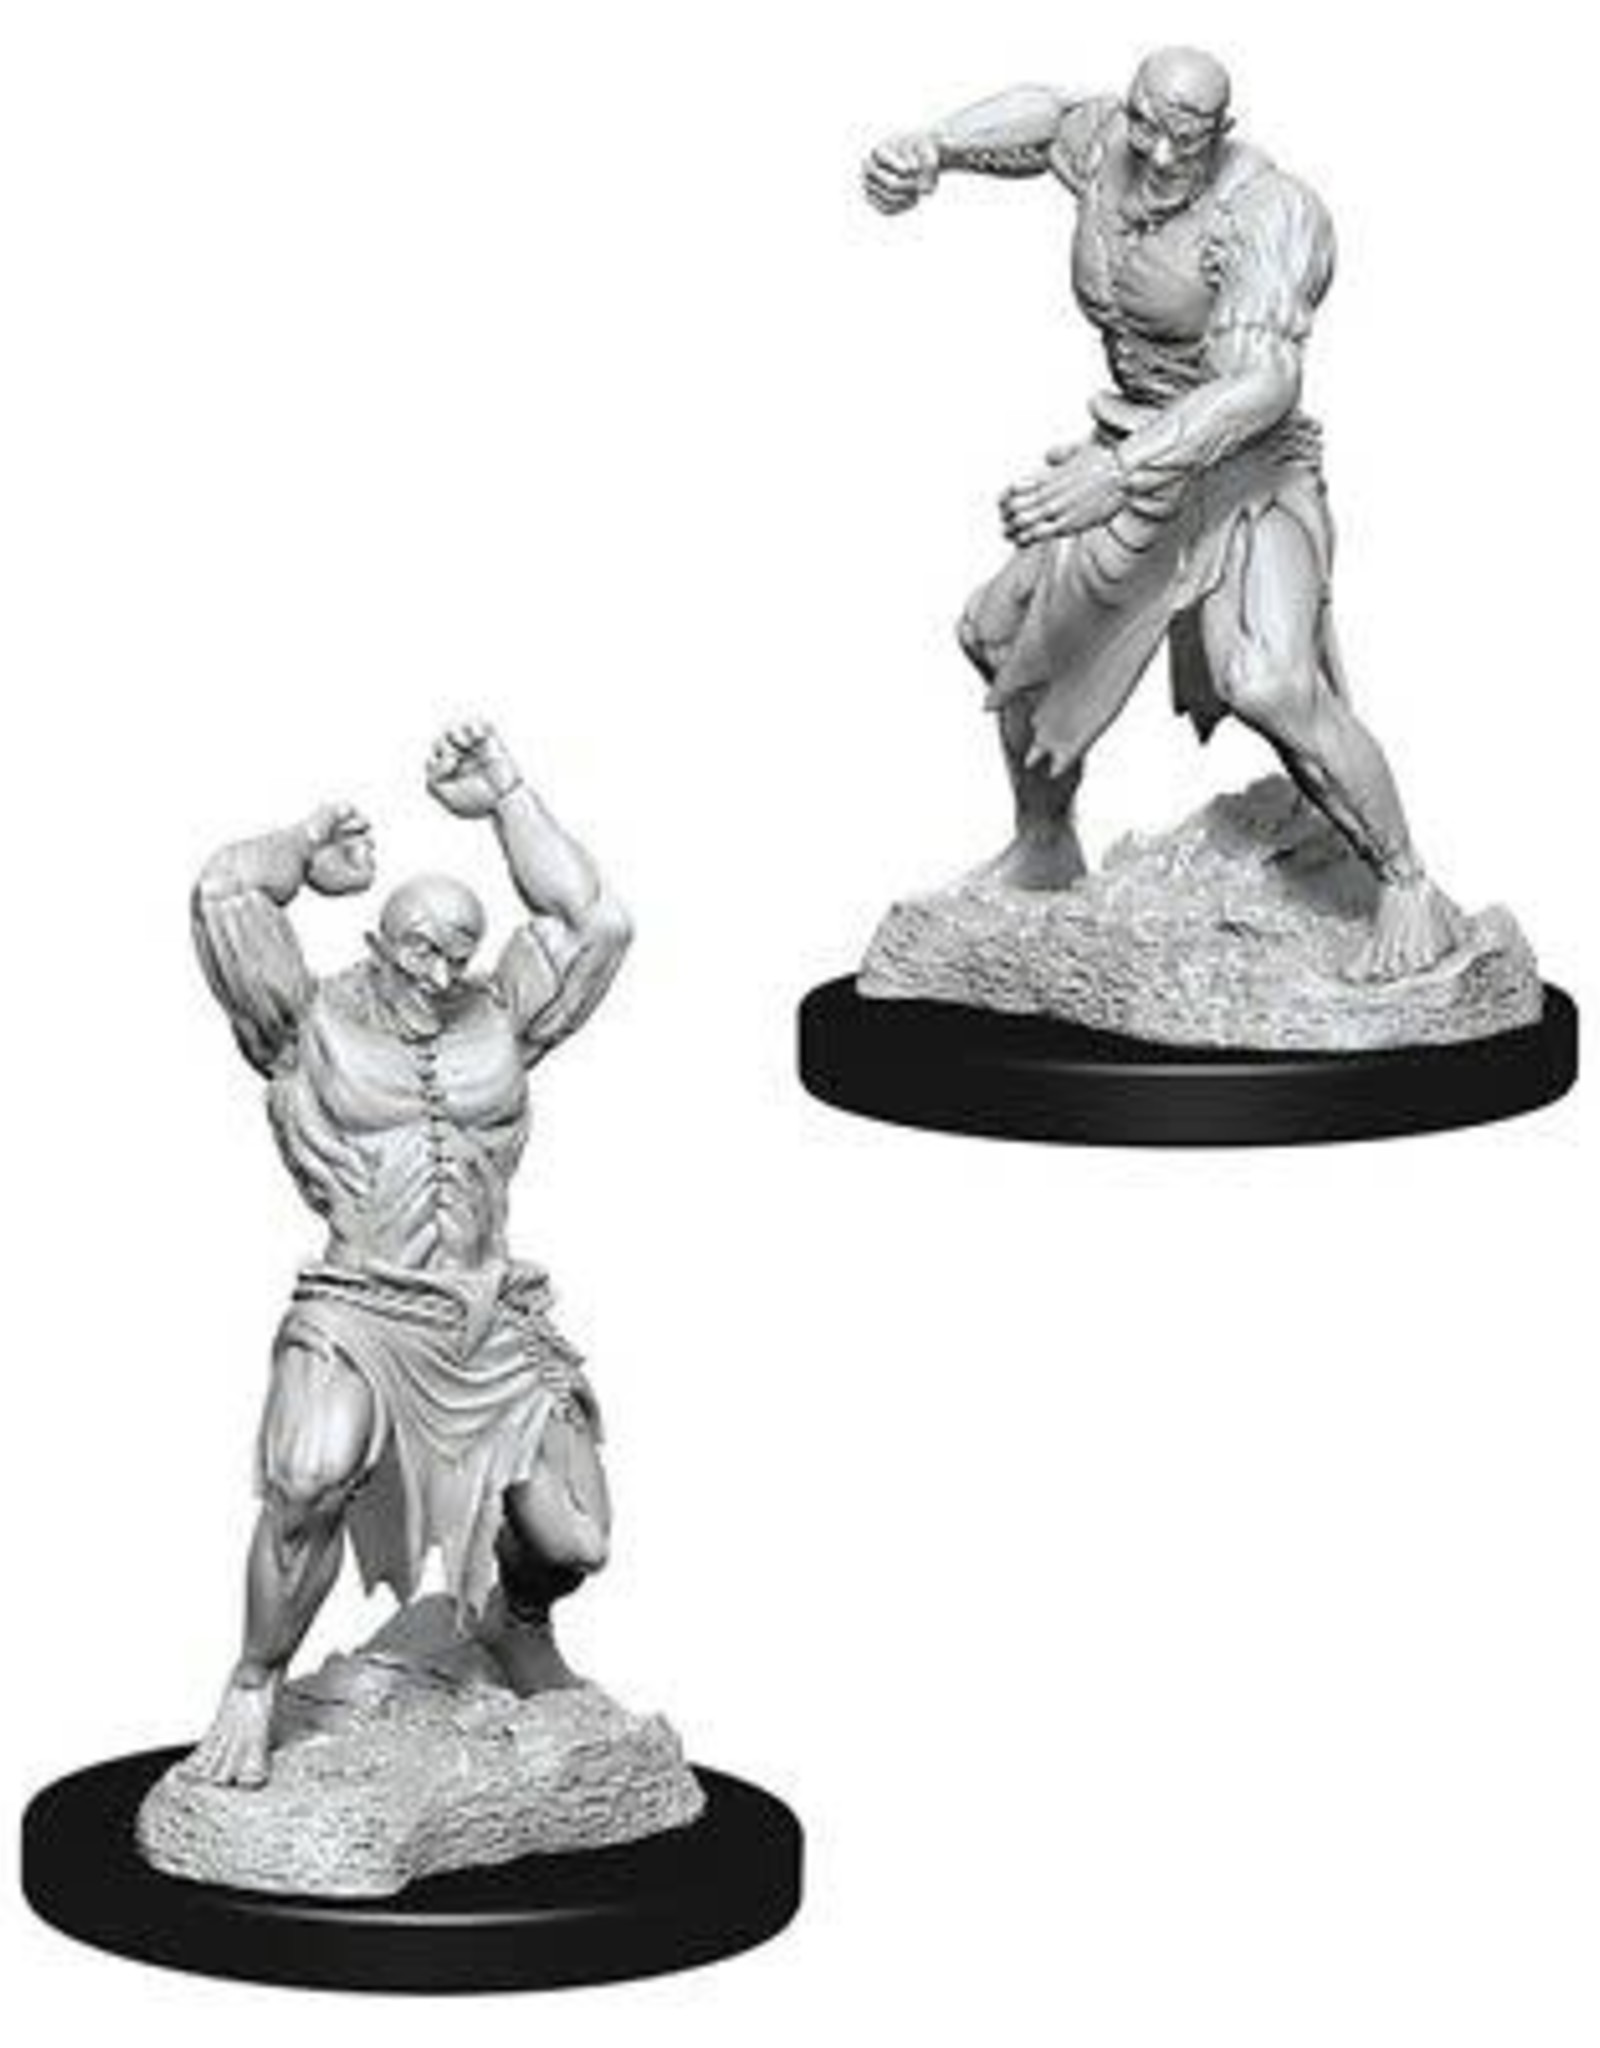 WizKids Dungeons & Dragons Nolzur's Marvelous Miniatures: Flesh Golem